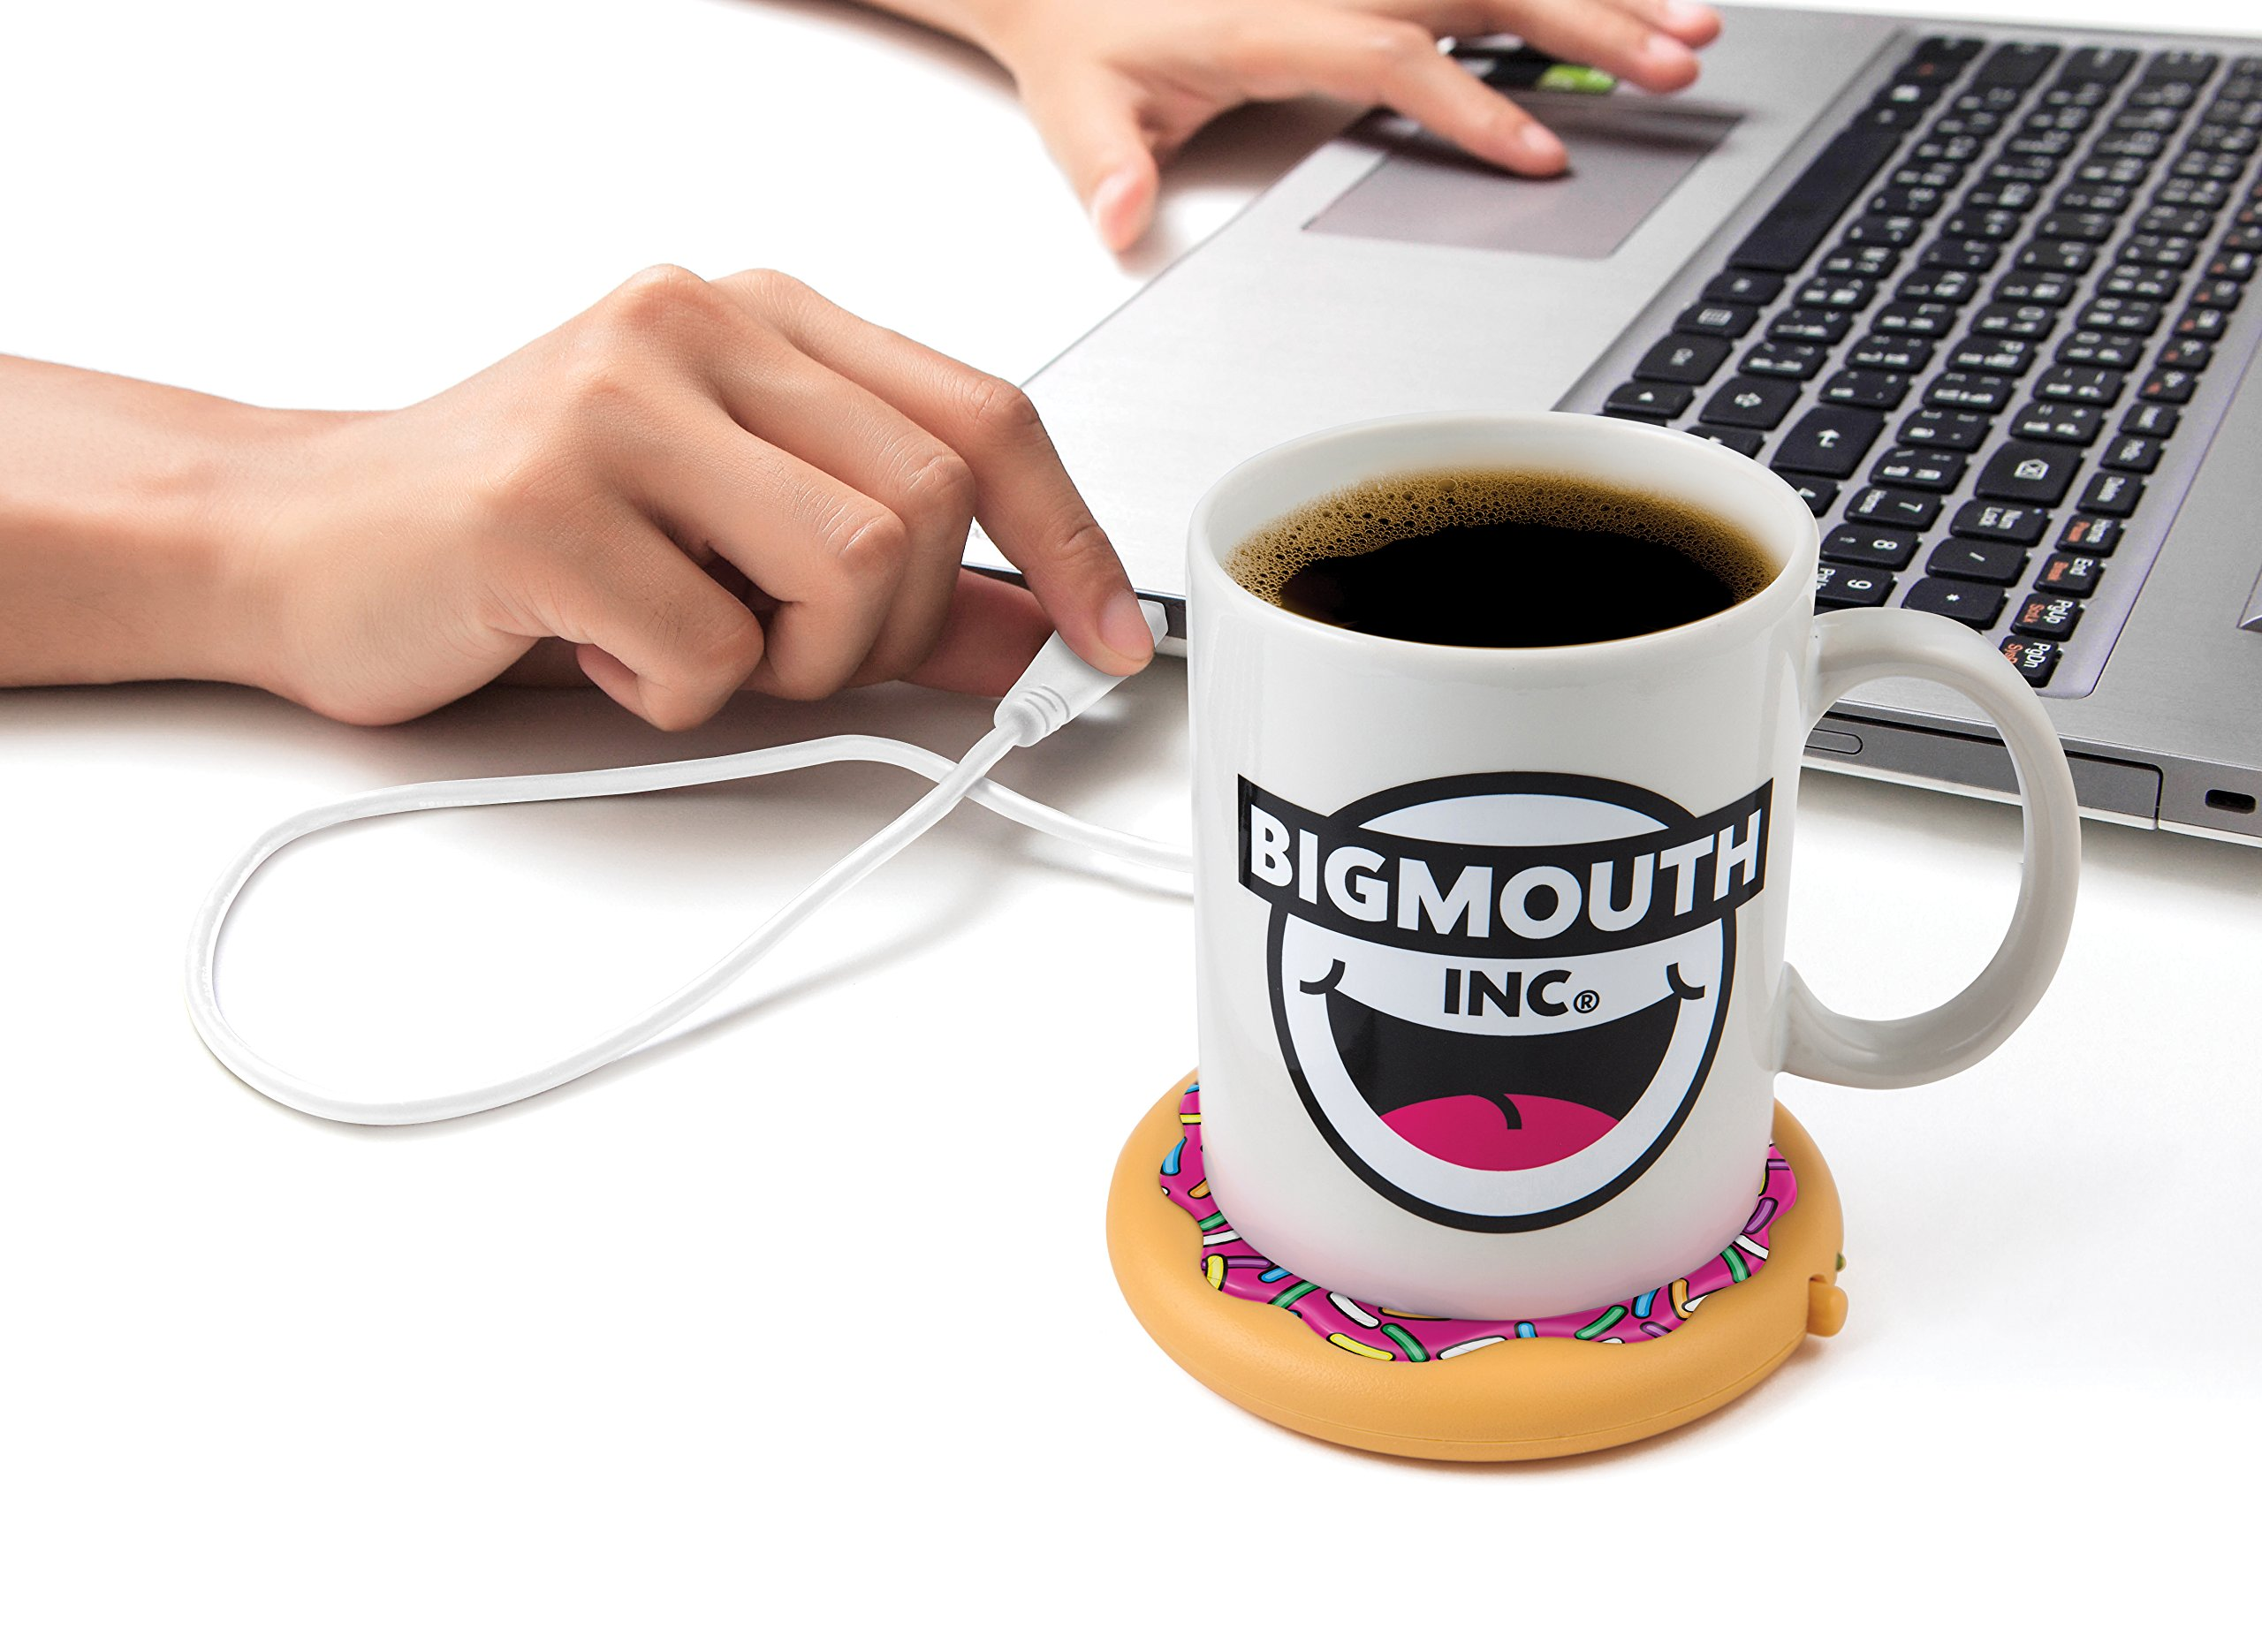 BigMouth Inc Coffee and a Donut USB Mug Warmer, Keeps Coffee Hot, Compatible with Most Computers, On/Off Button